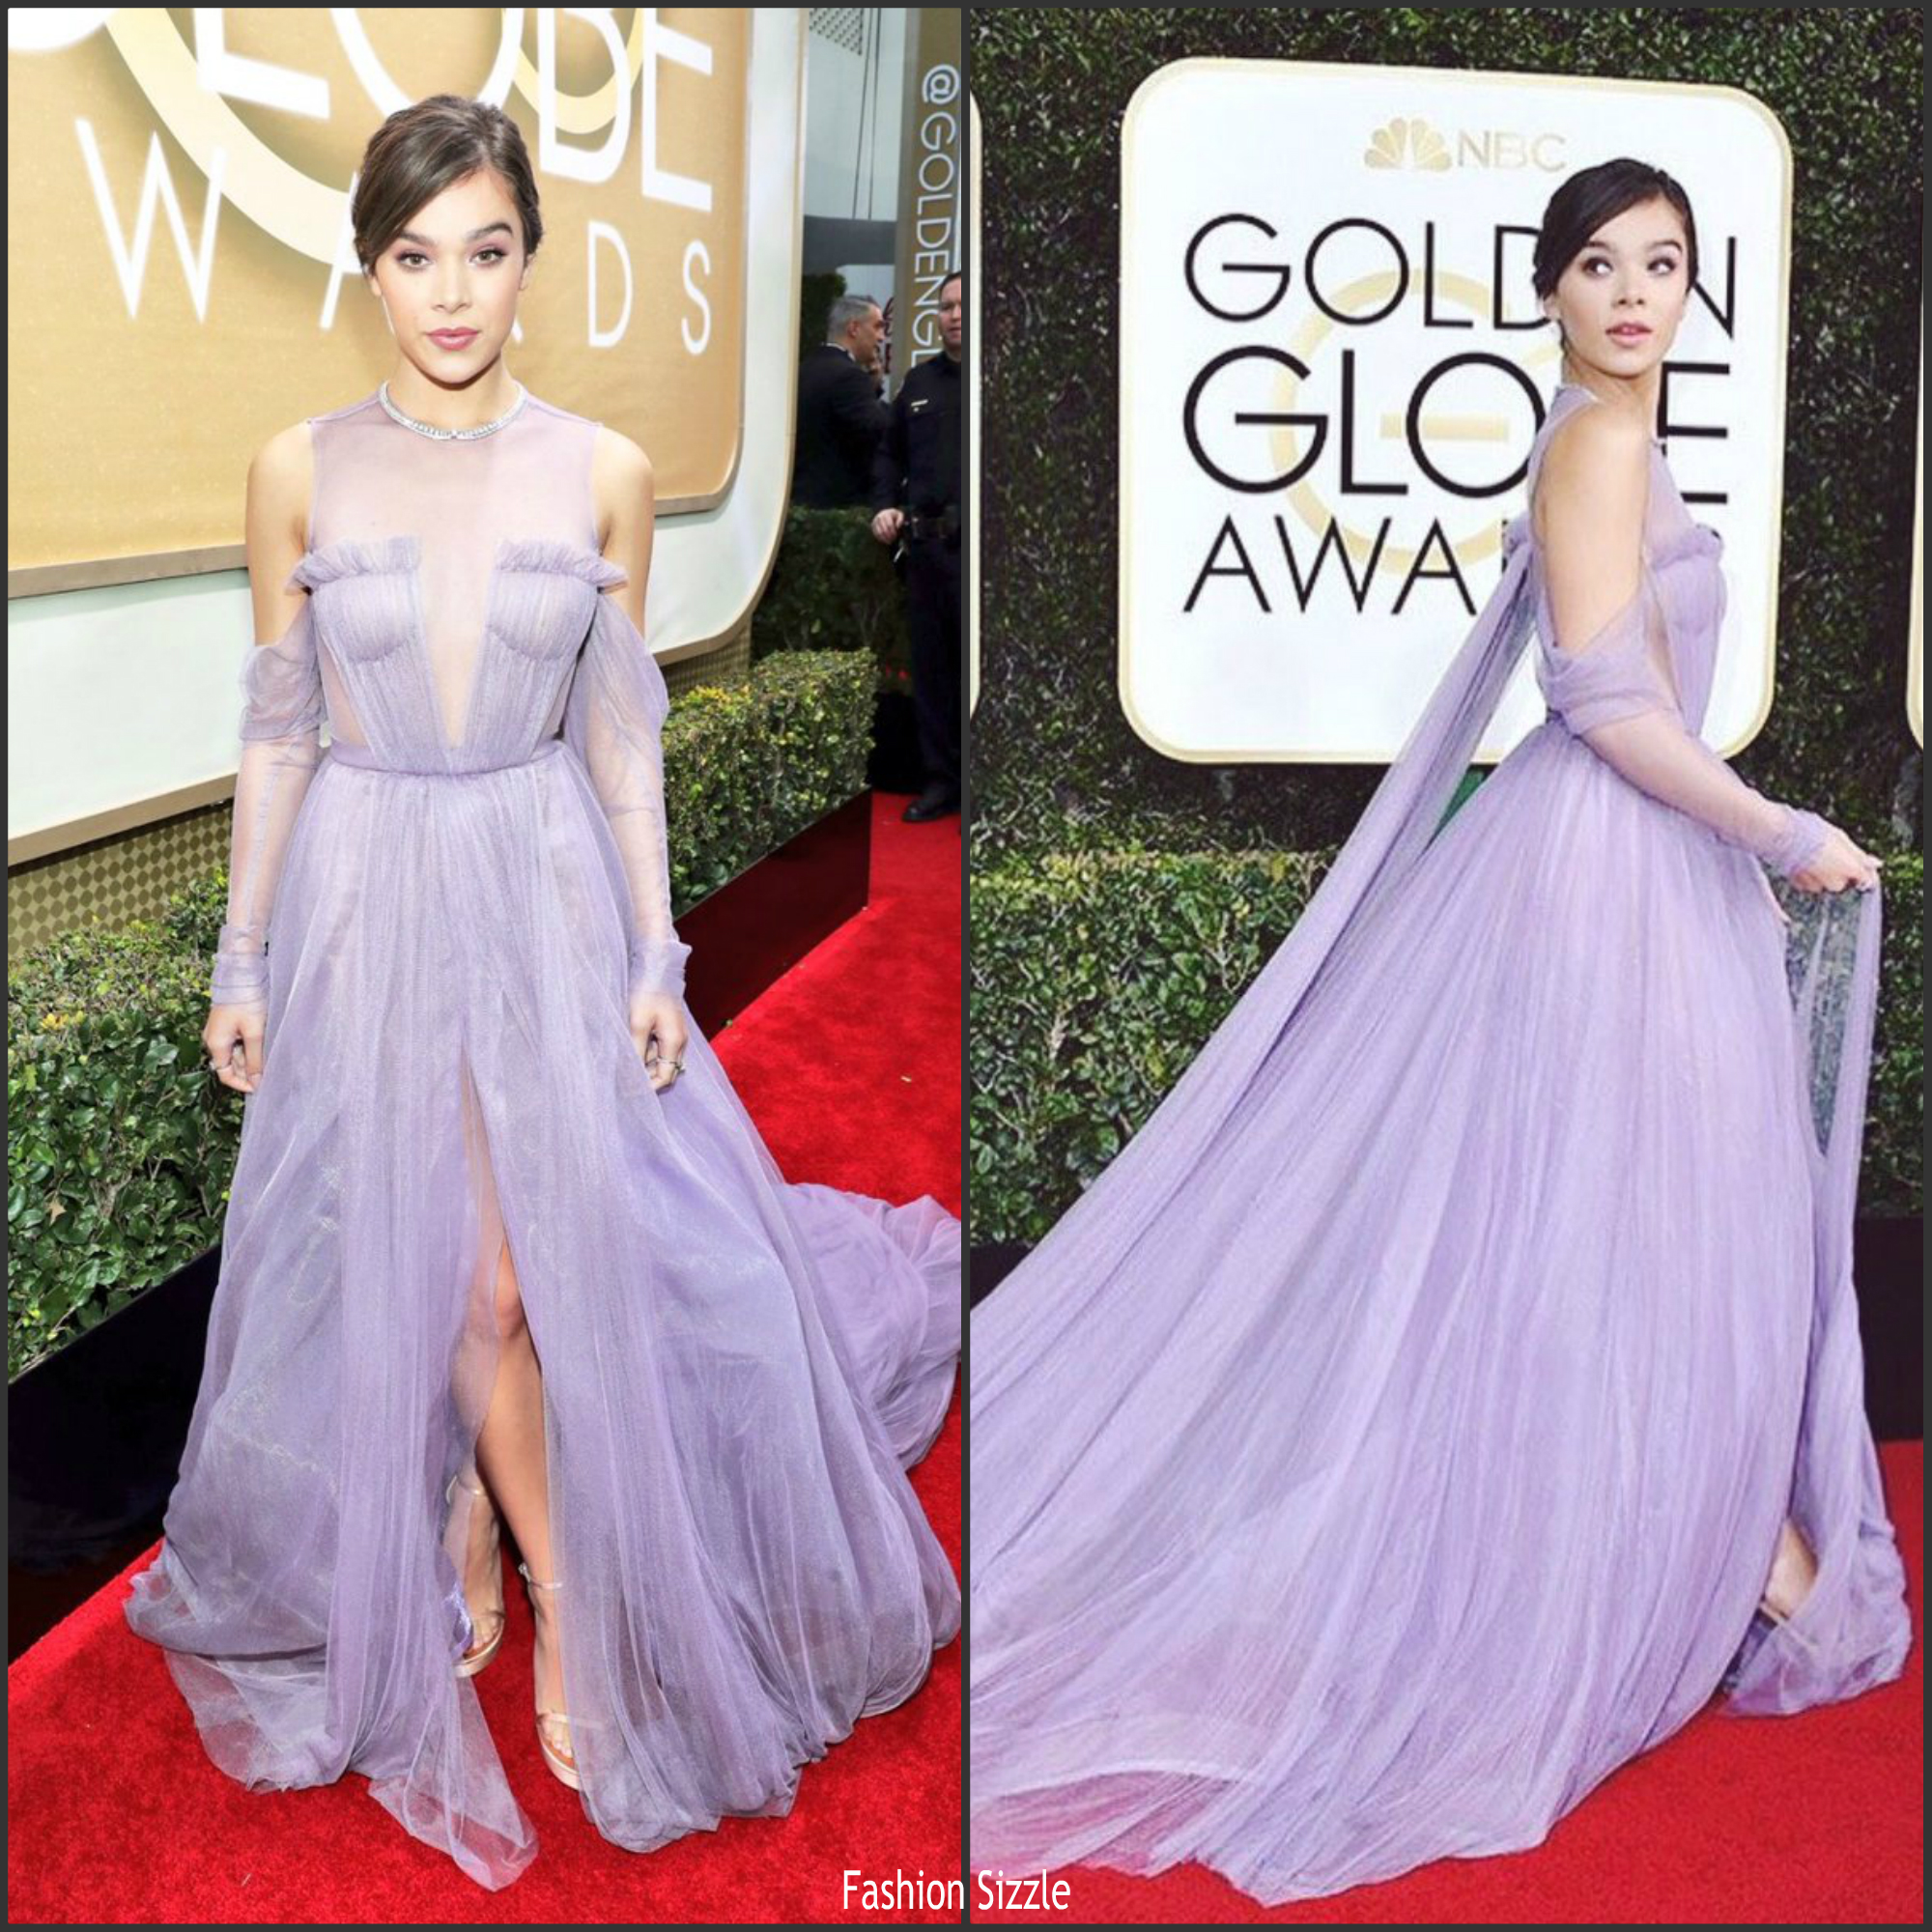 hailee-steinfeld-in-vera-wang-at-the-2017-golden-globe-awards